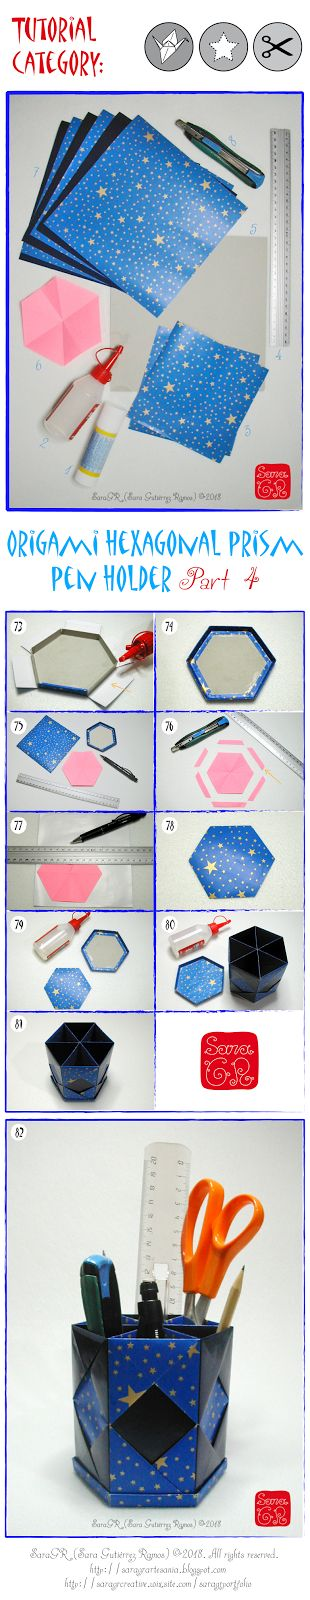 Take a look my new #prismacolor cience #crafts #tutorial about how to make a #hexagonal #prism pen holder, on my blog entry  #prisma #intructions #geometry #science #infographics #geometria #DIY #NASA #ESA #educational #maths #manualitats #ciència